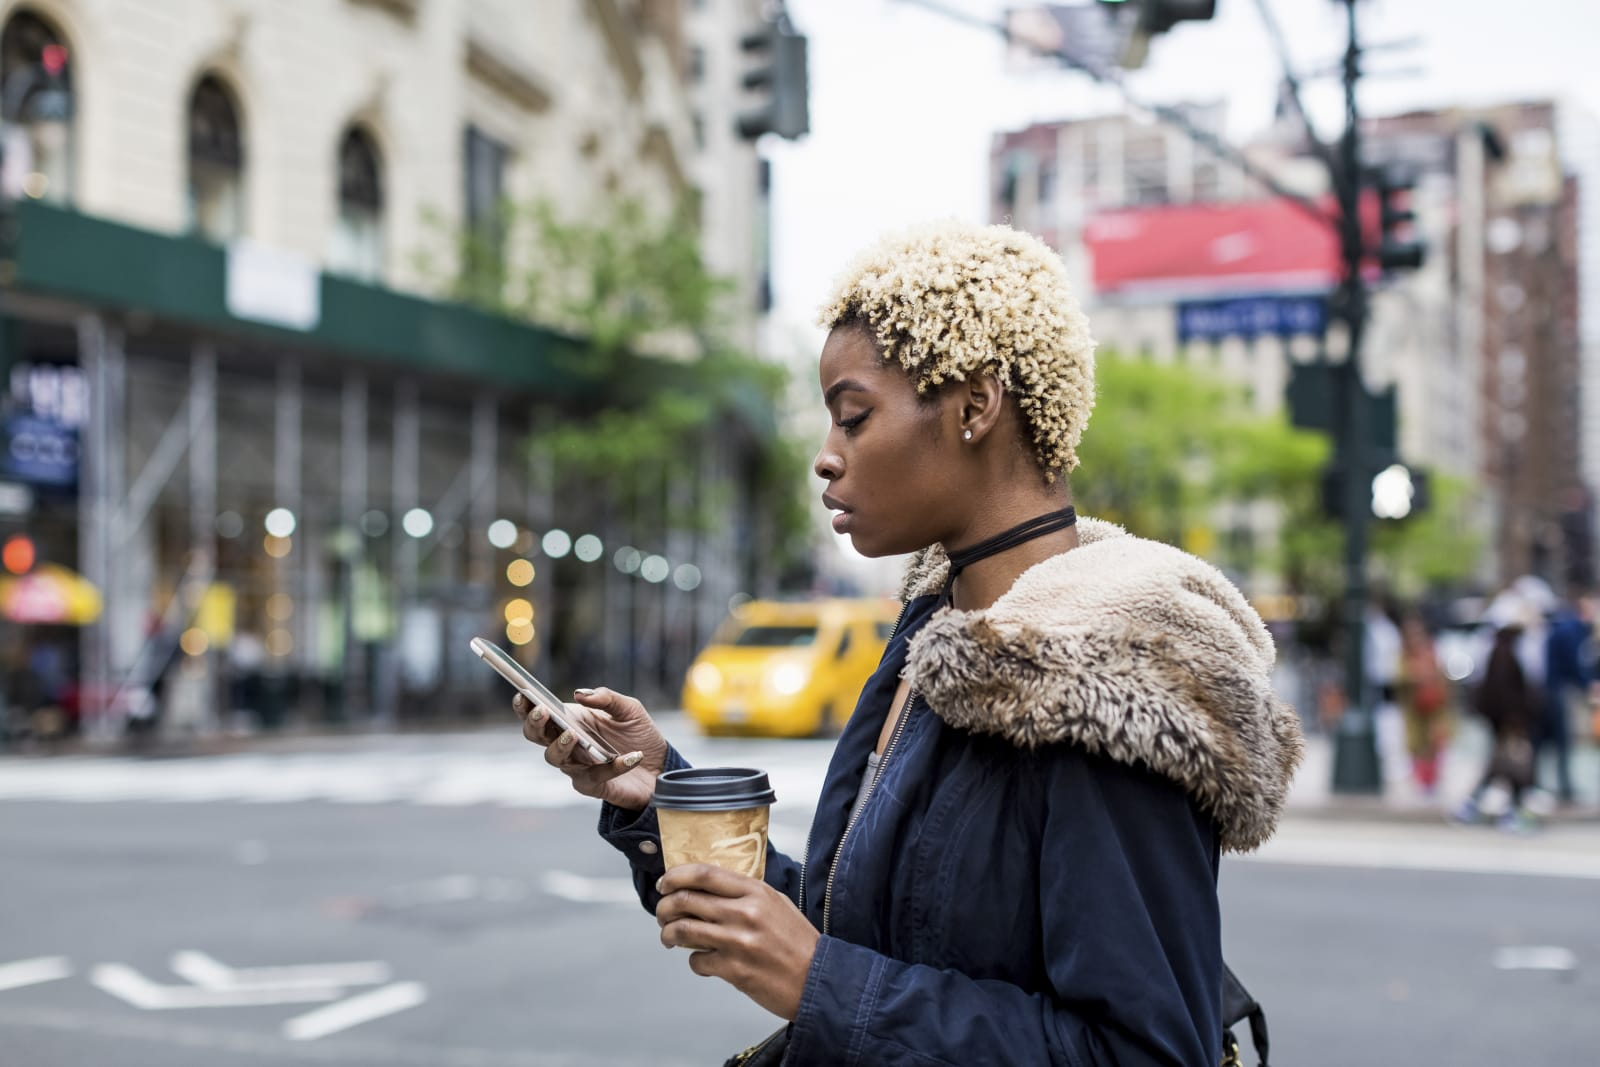 New York City bill could make selling phone location data illegal